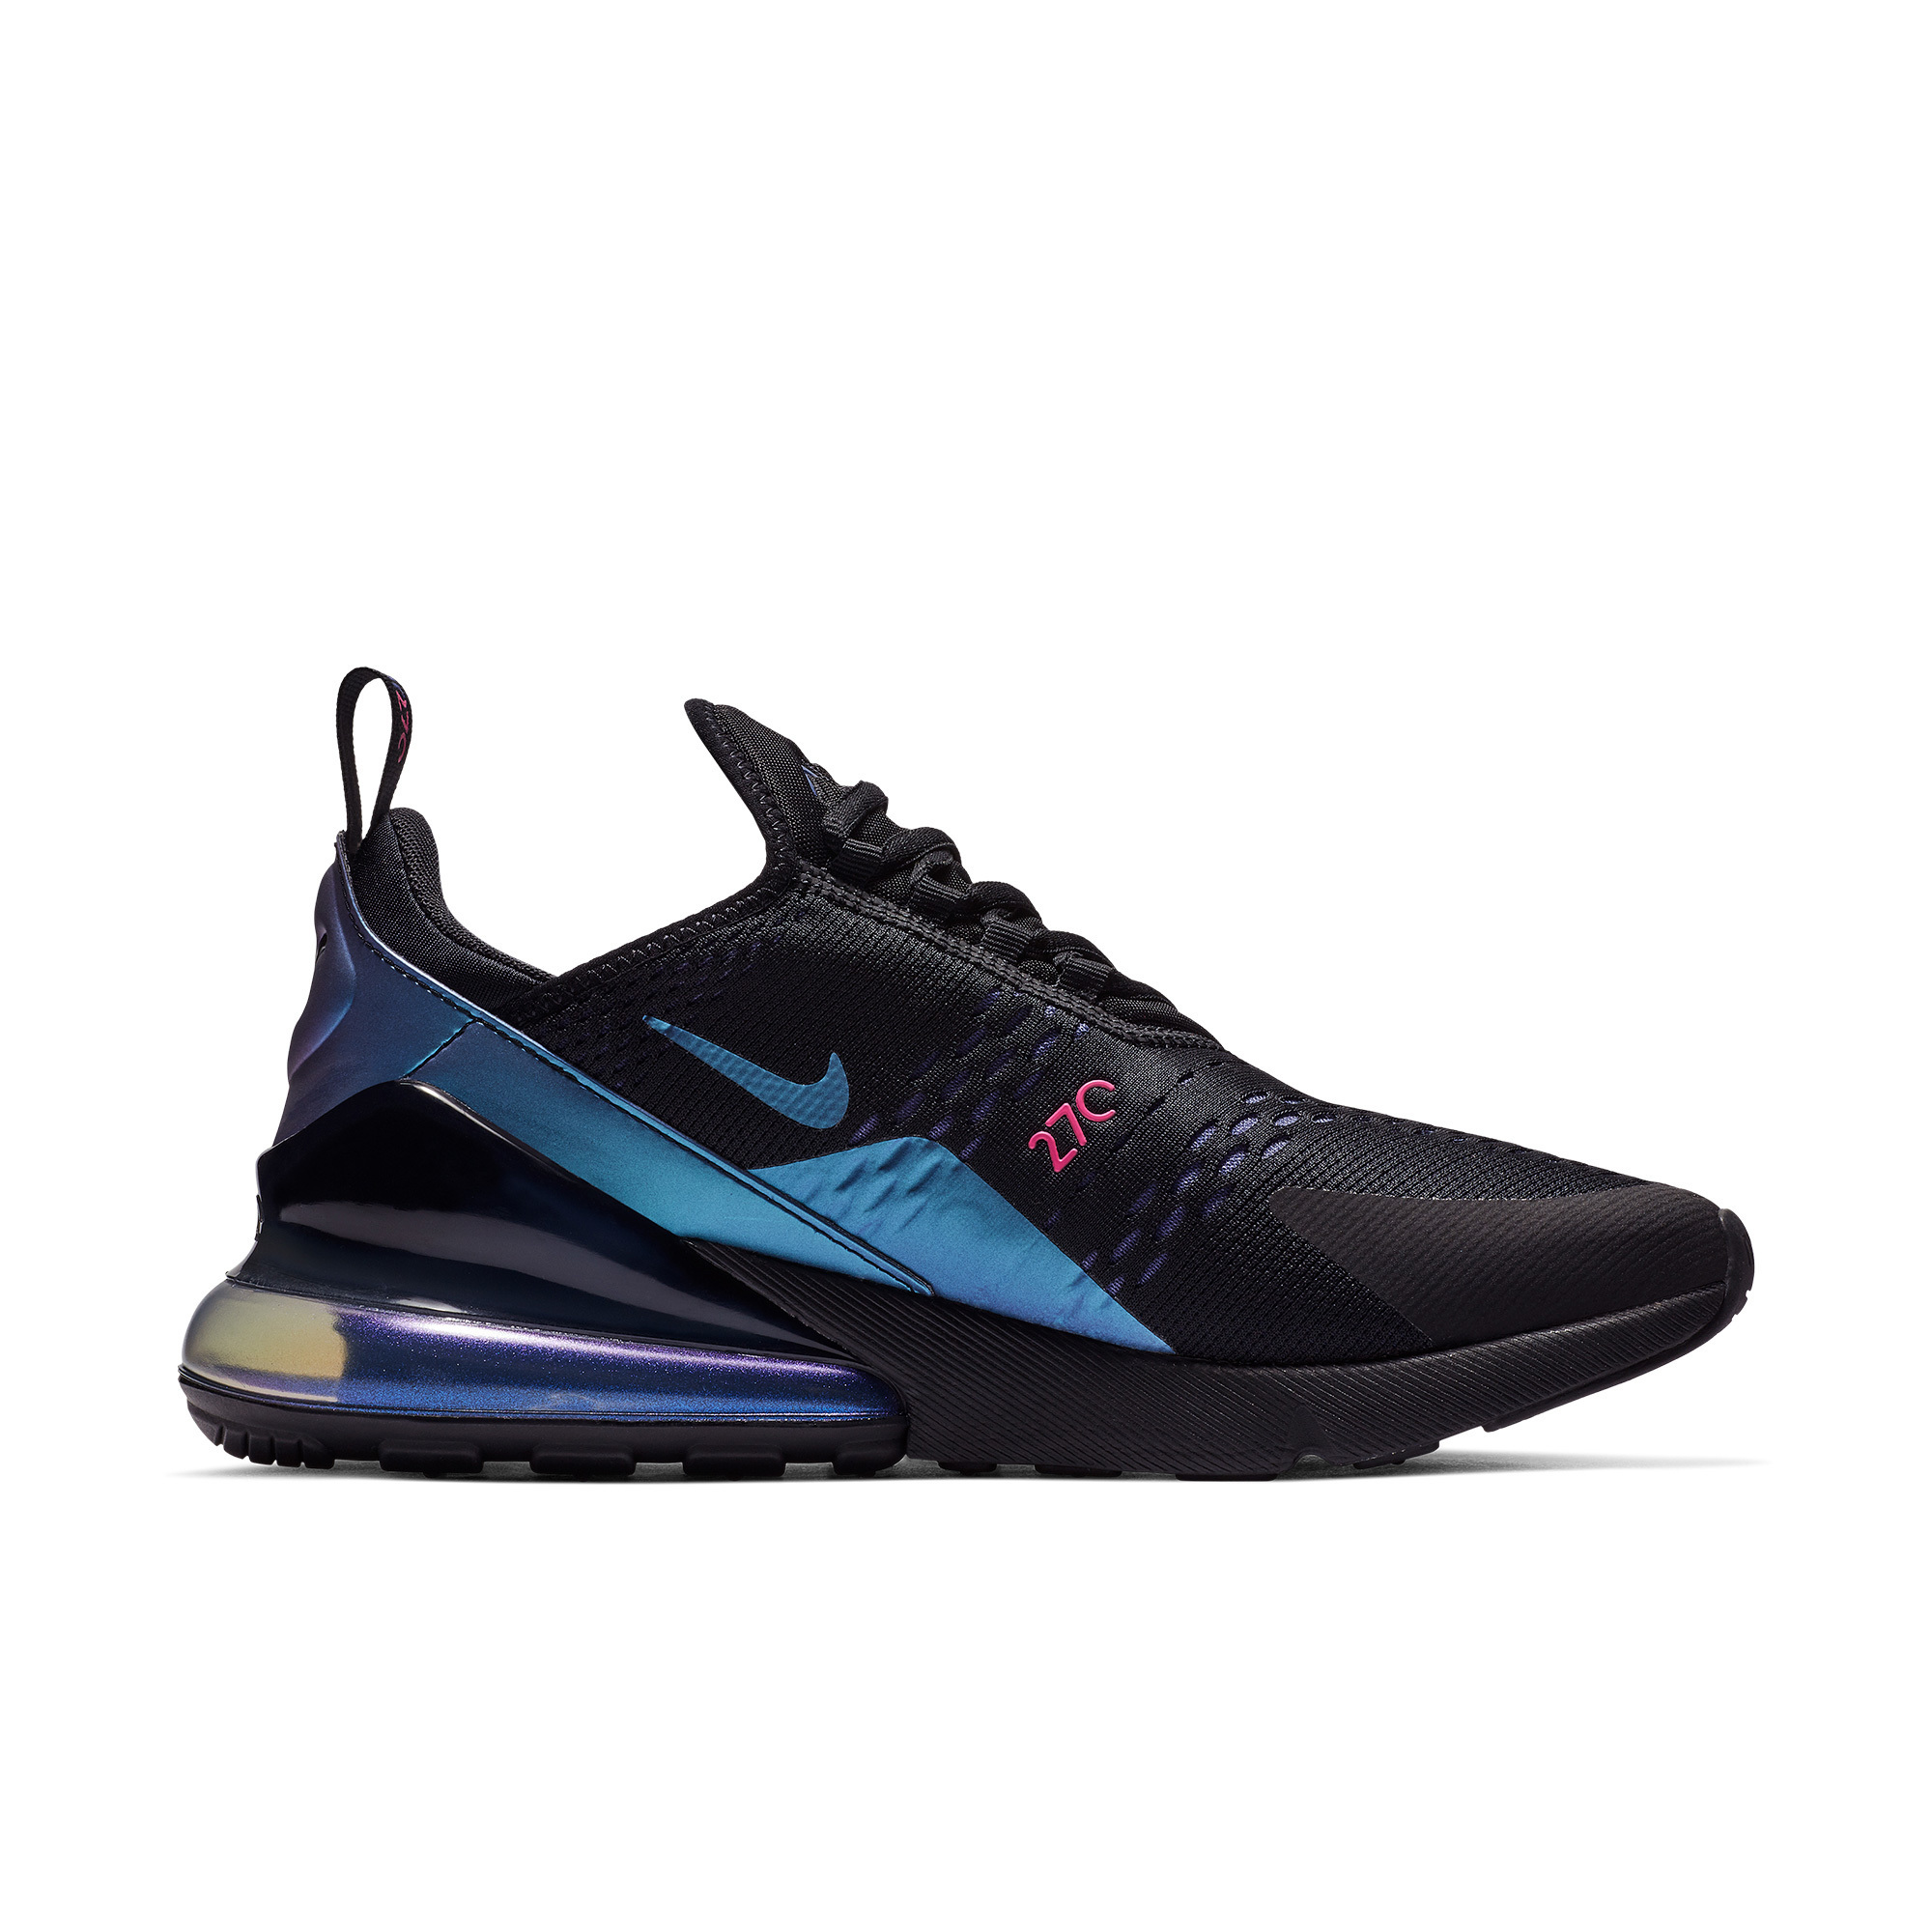 NIKE AIR MAX 270 Original Men Running Shoes Outdoor Sports Travel Shock Absorption Sneakers AH8050 in Running Shoes from Sports Entertainment